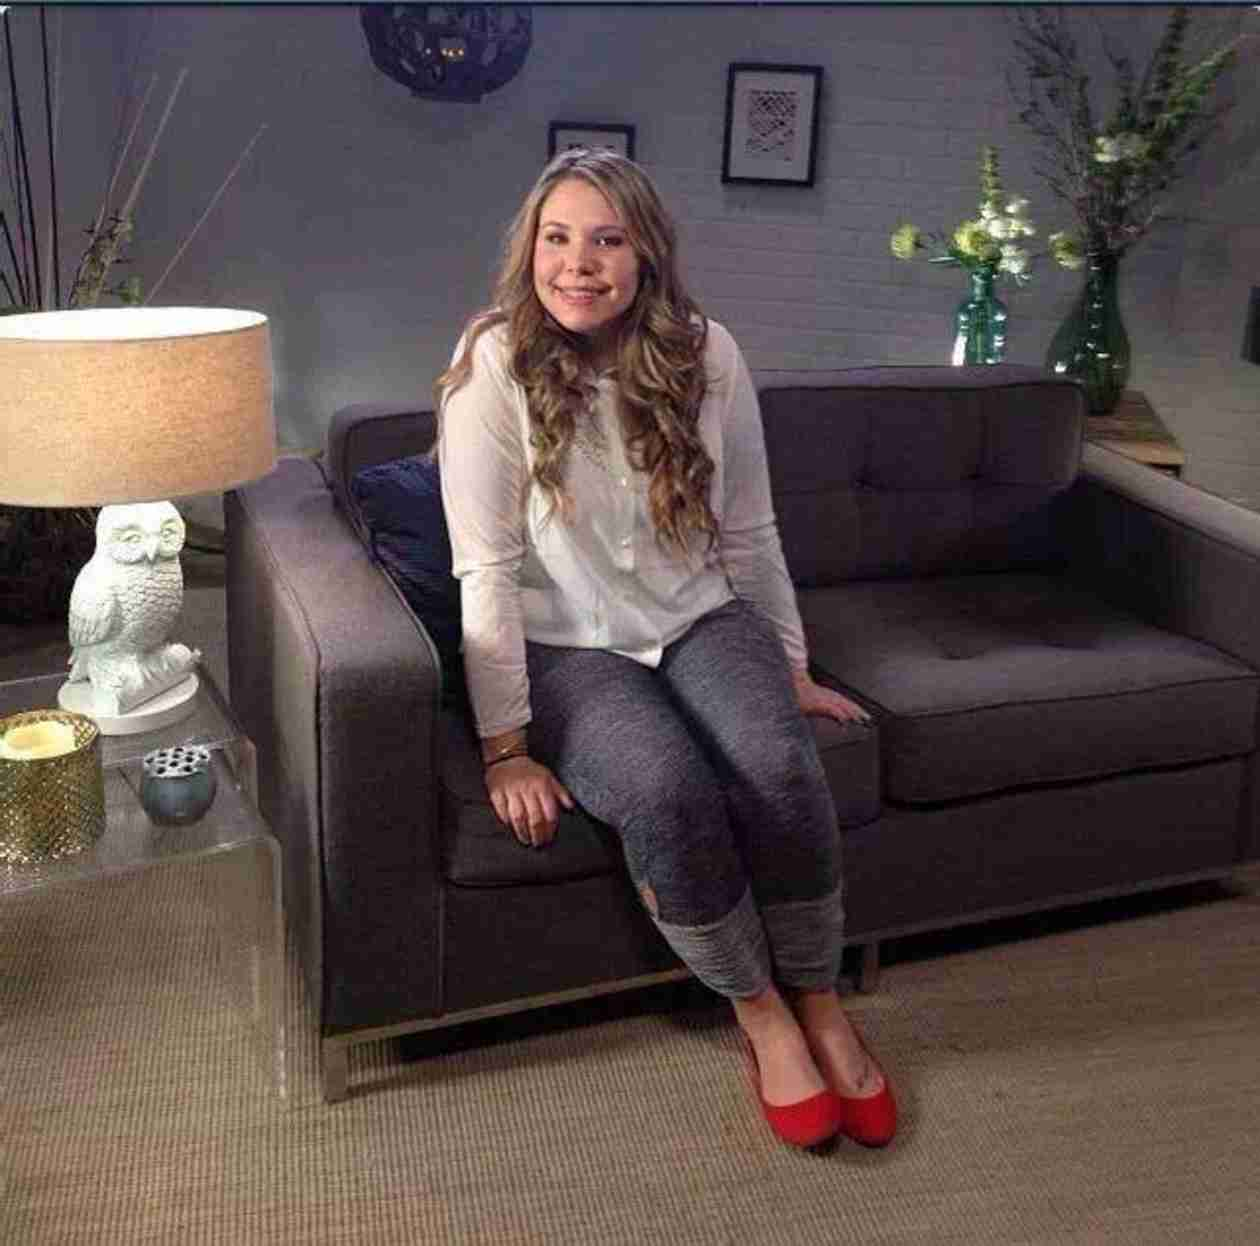 Kailyn Lowry Opens Up About Fan Reaction to Her Abortion